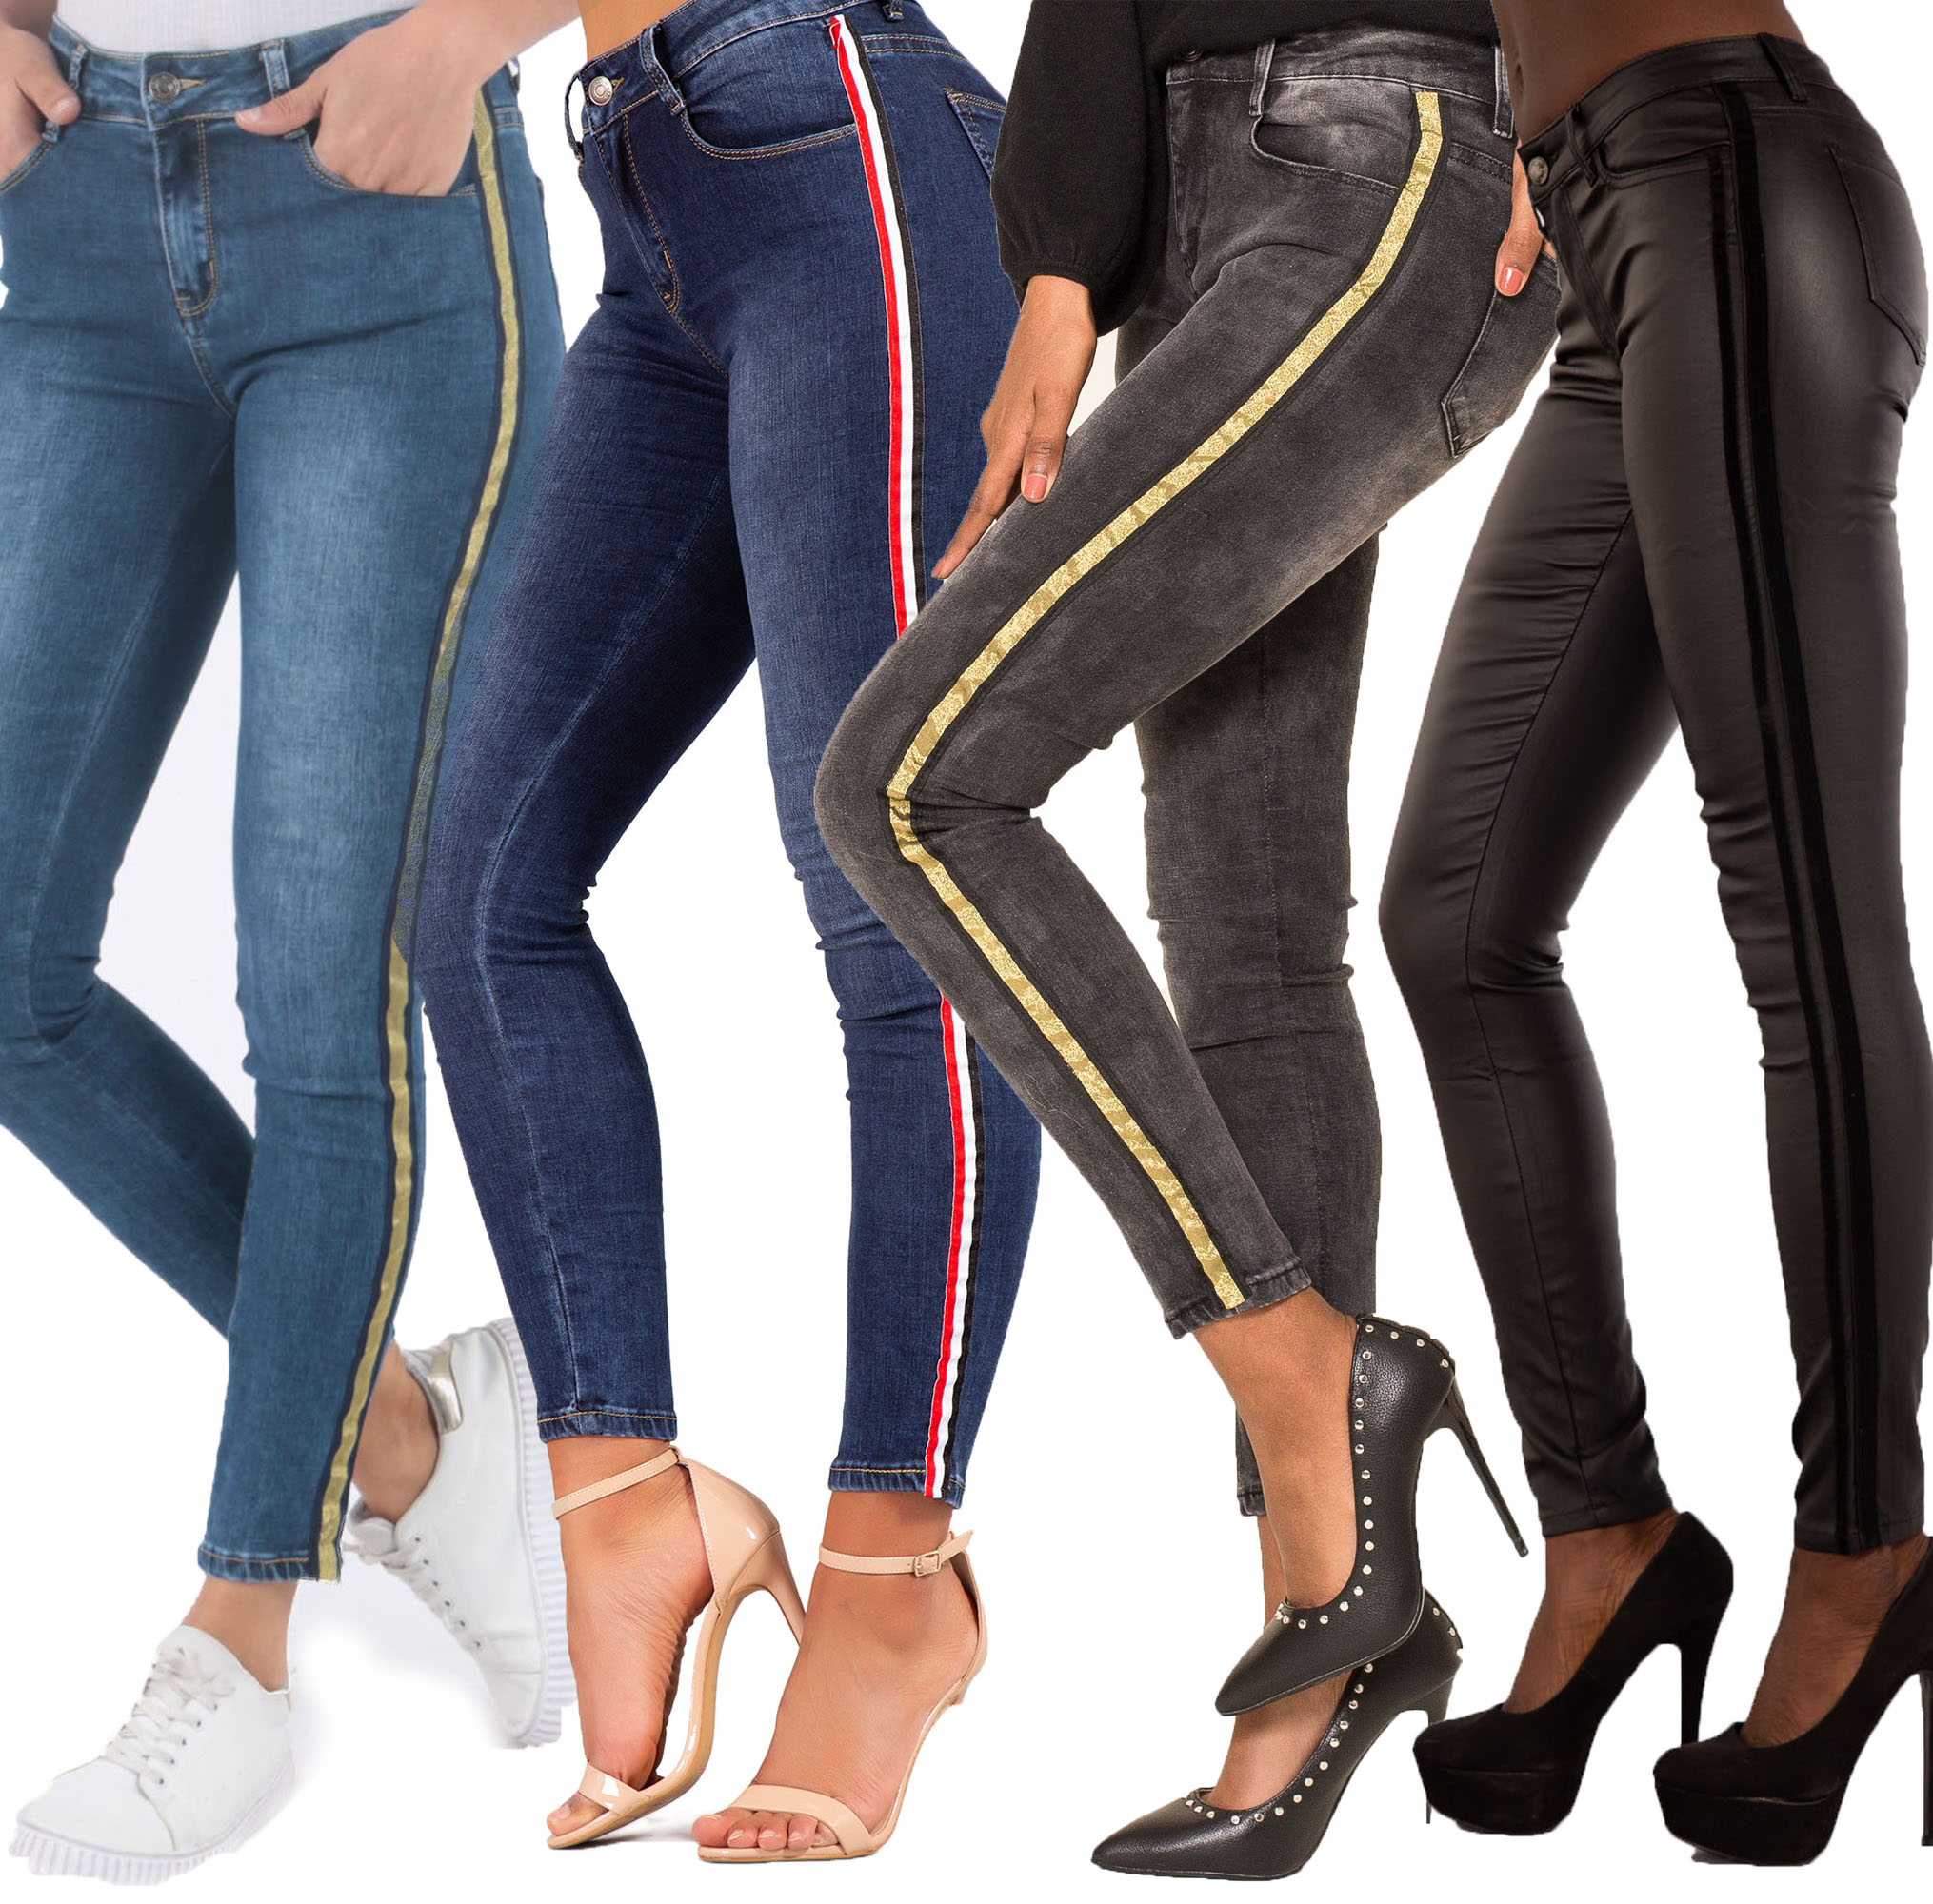 a73c67008a75 Details about New Womens High Waisted Slim Skinny Jeans Stretchy Side  Striped Pants Size 6-14